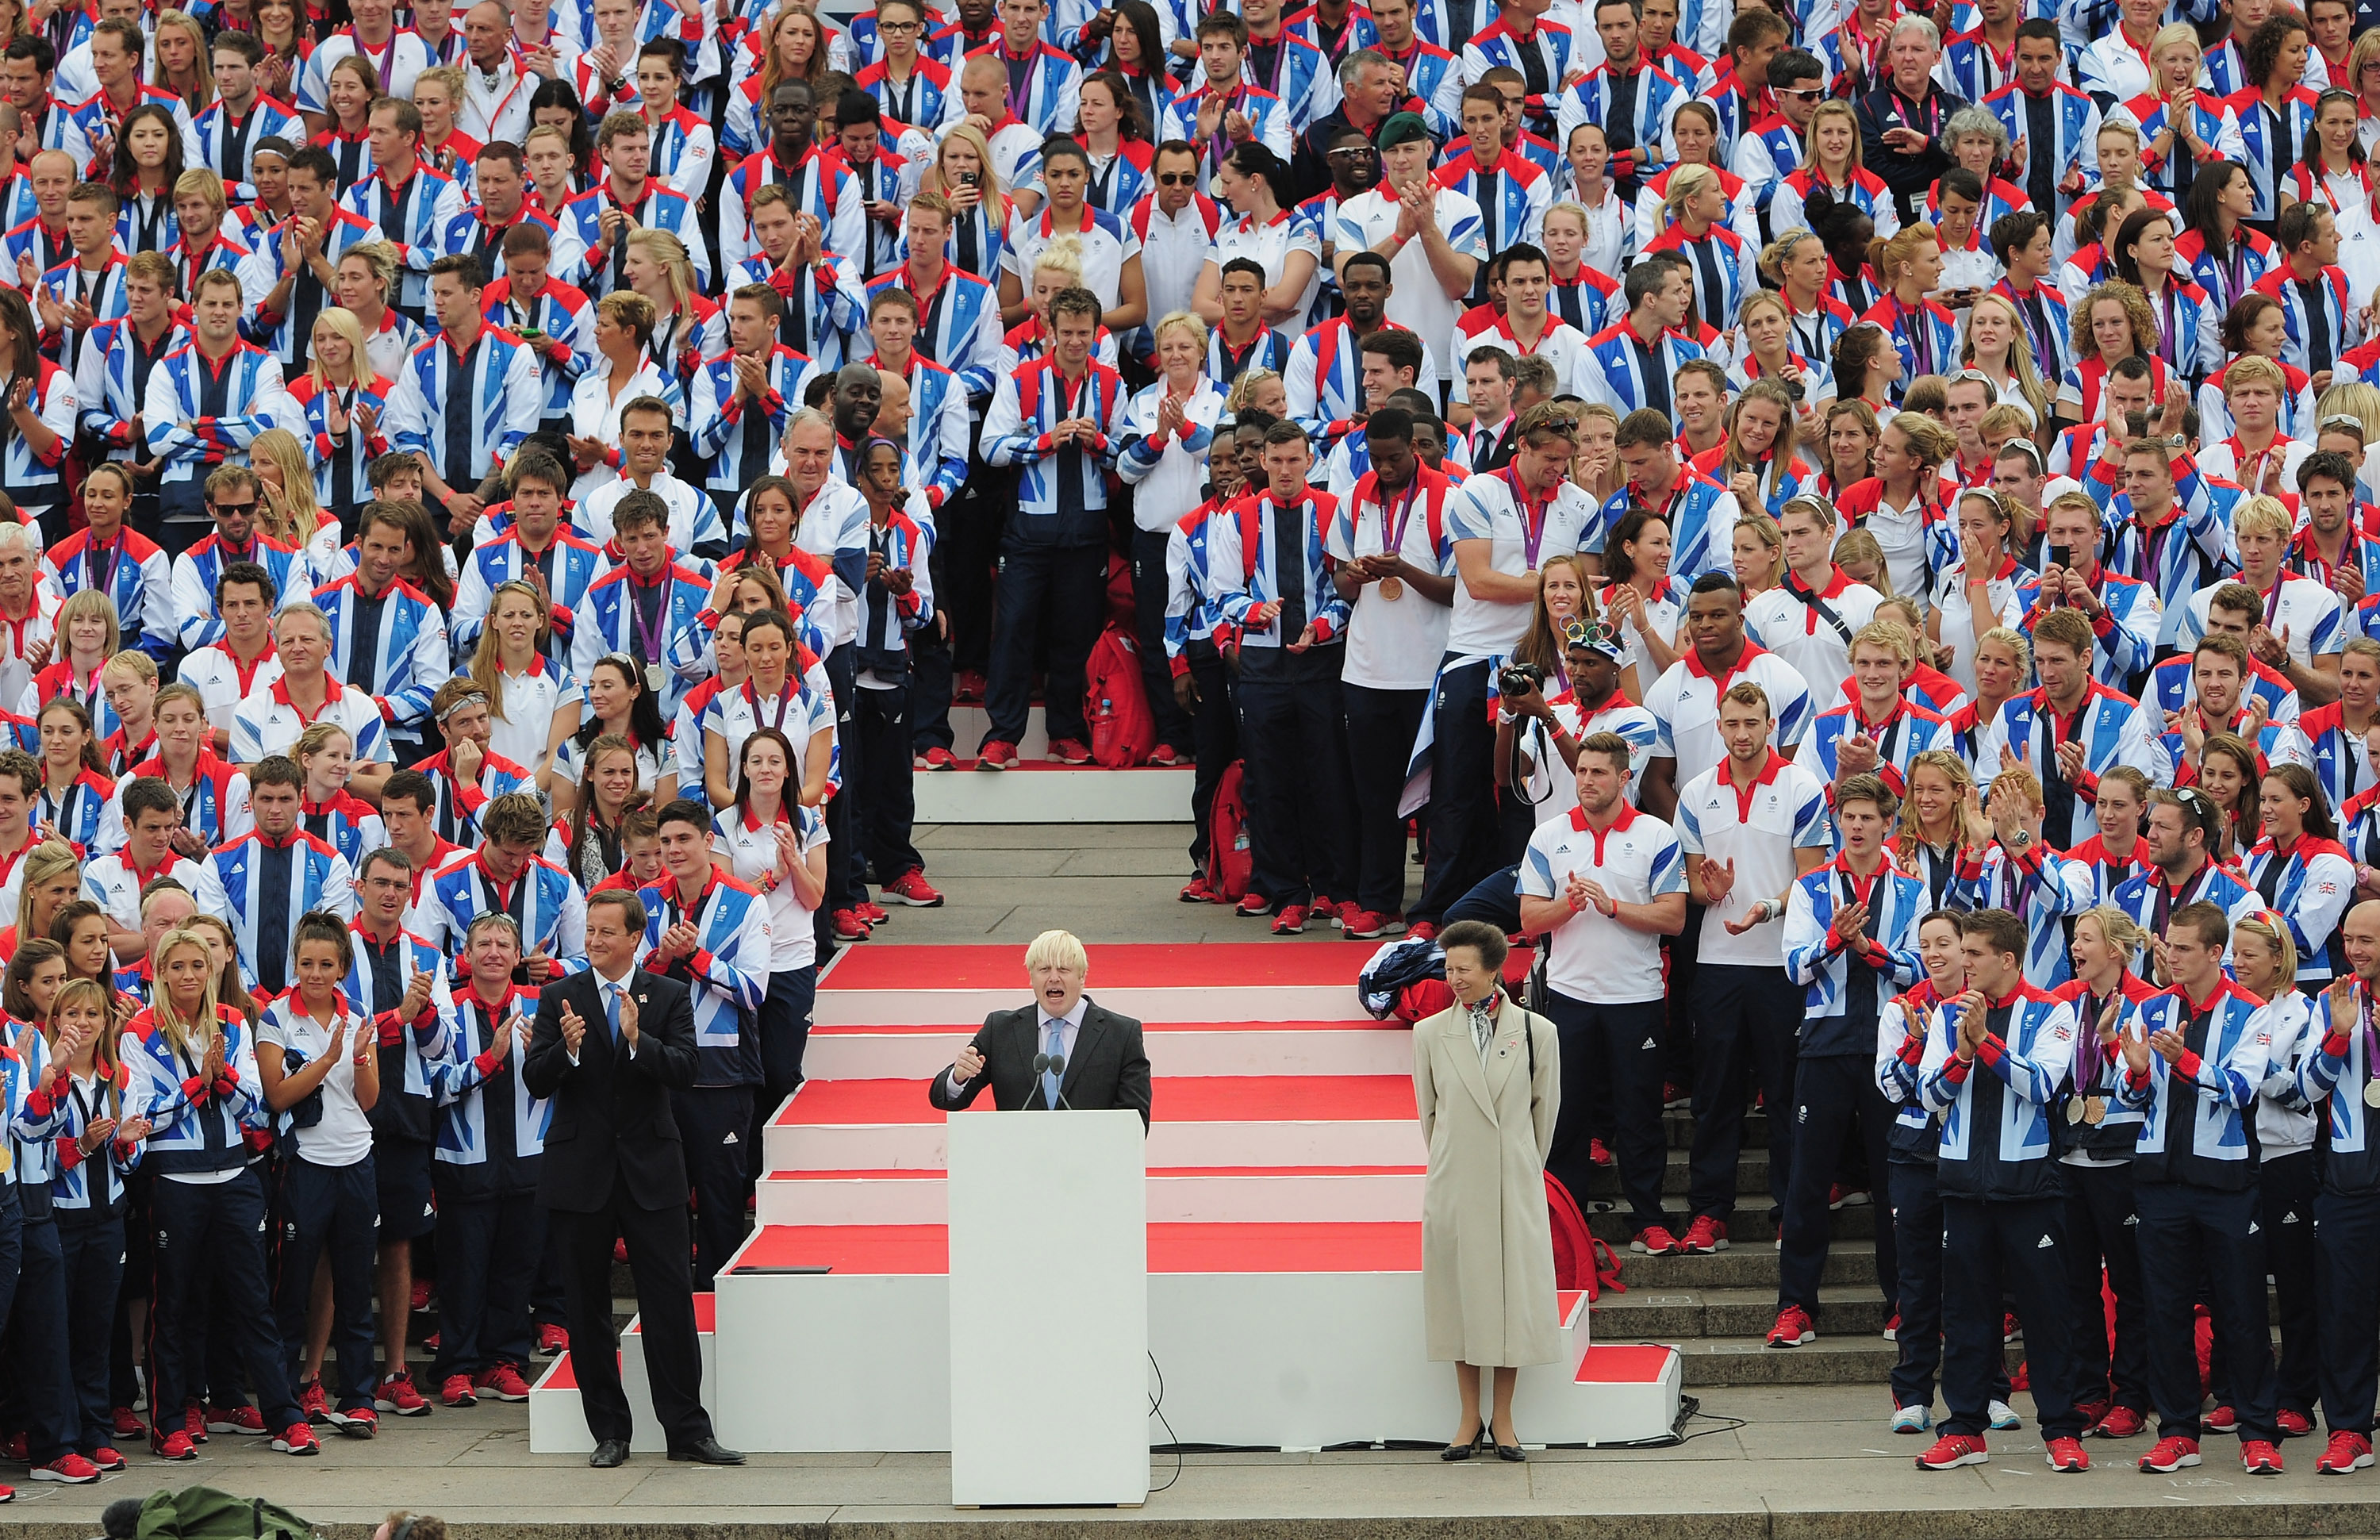 Mayor of London Boris Johnson addresses the athletes and fans from the QVM during the London 2012 Victory Parade for Team GB and Paralympic GB athletes in London, England.